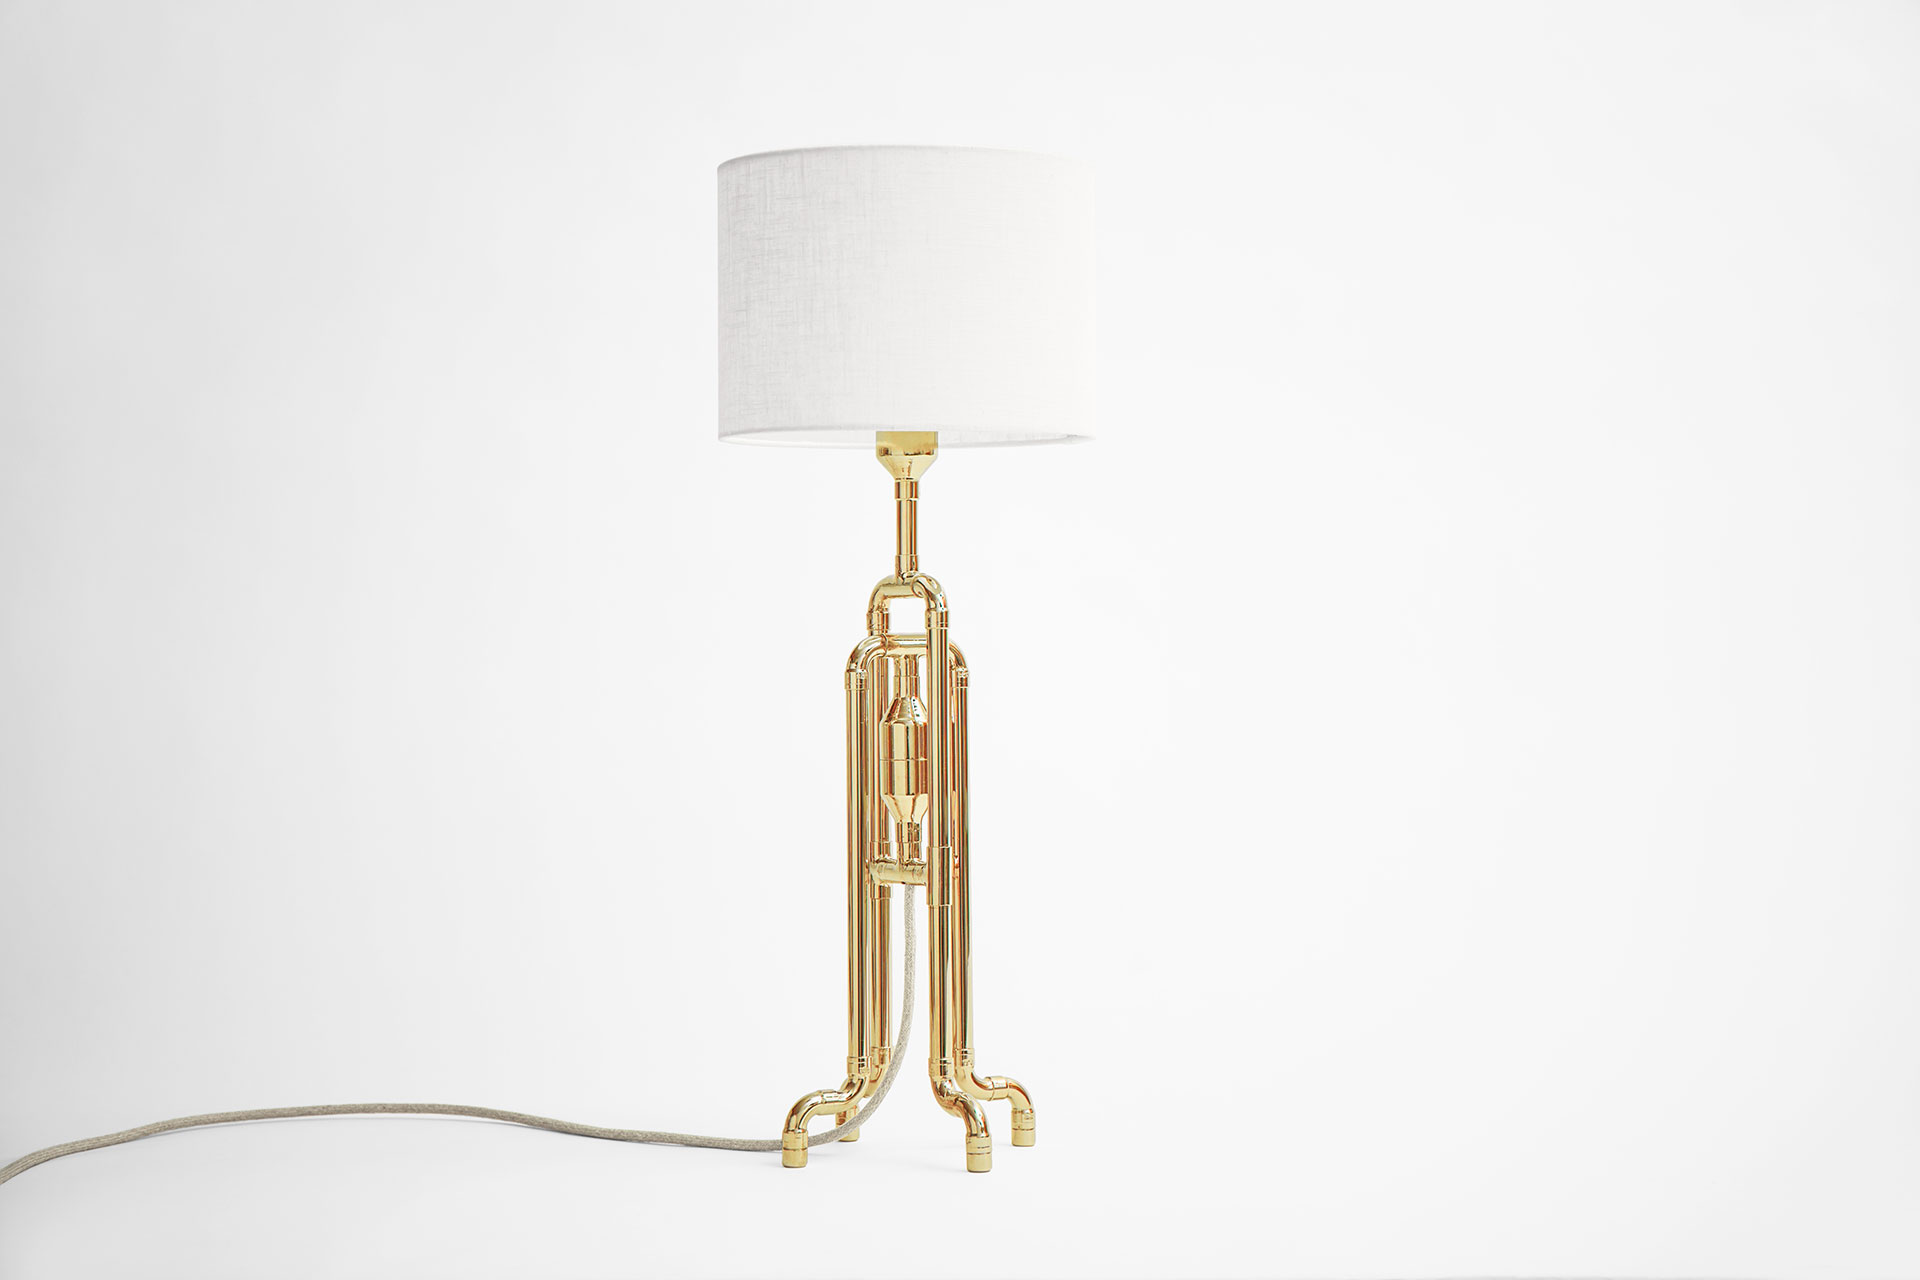 Designer table lamp in gold brass metal finish with white natural linen shade inspired by jellyfish shape